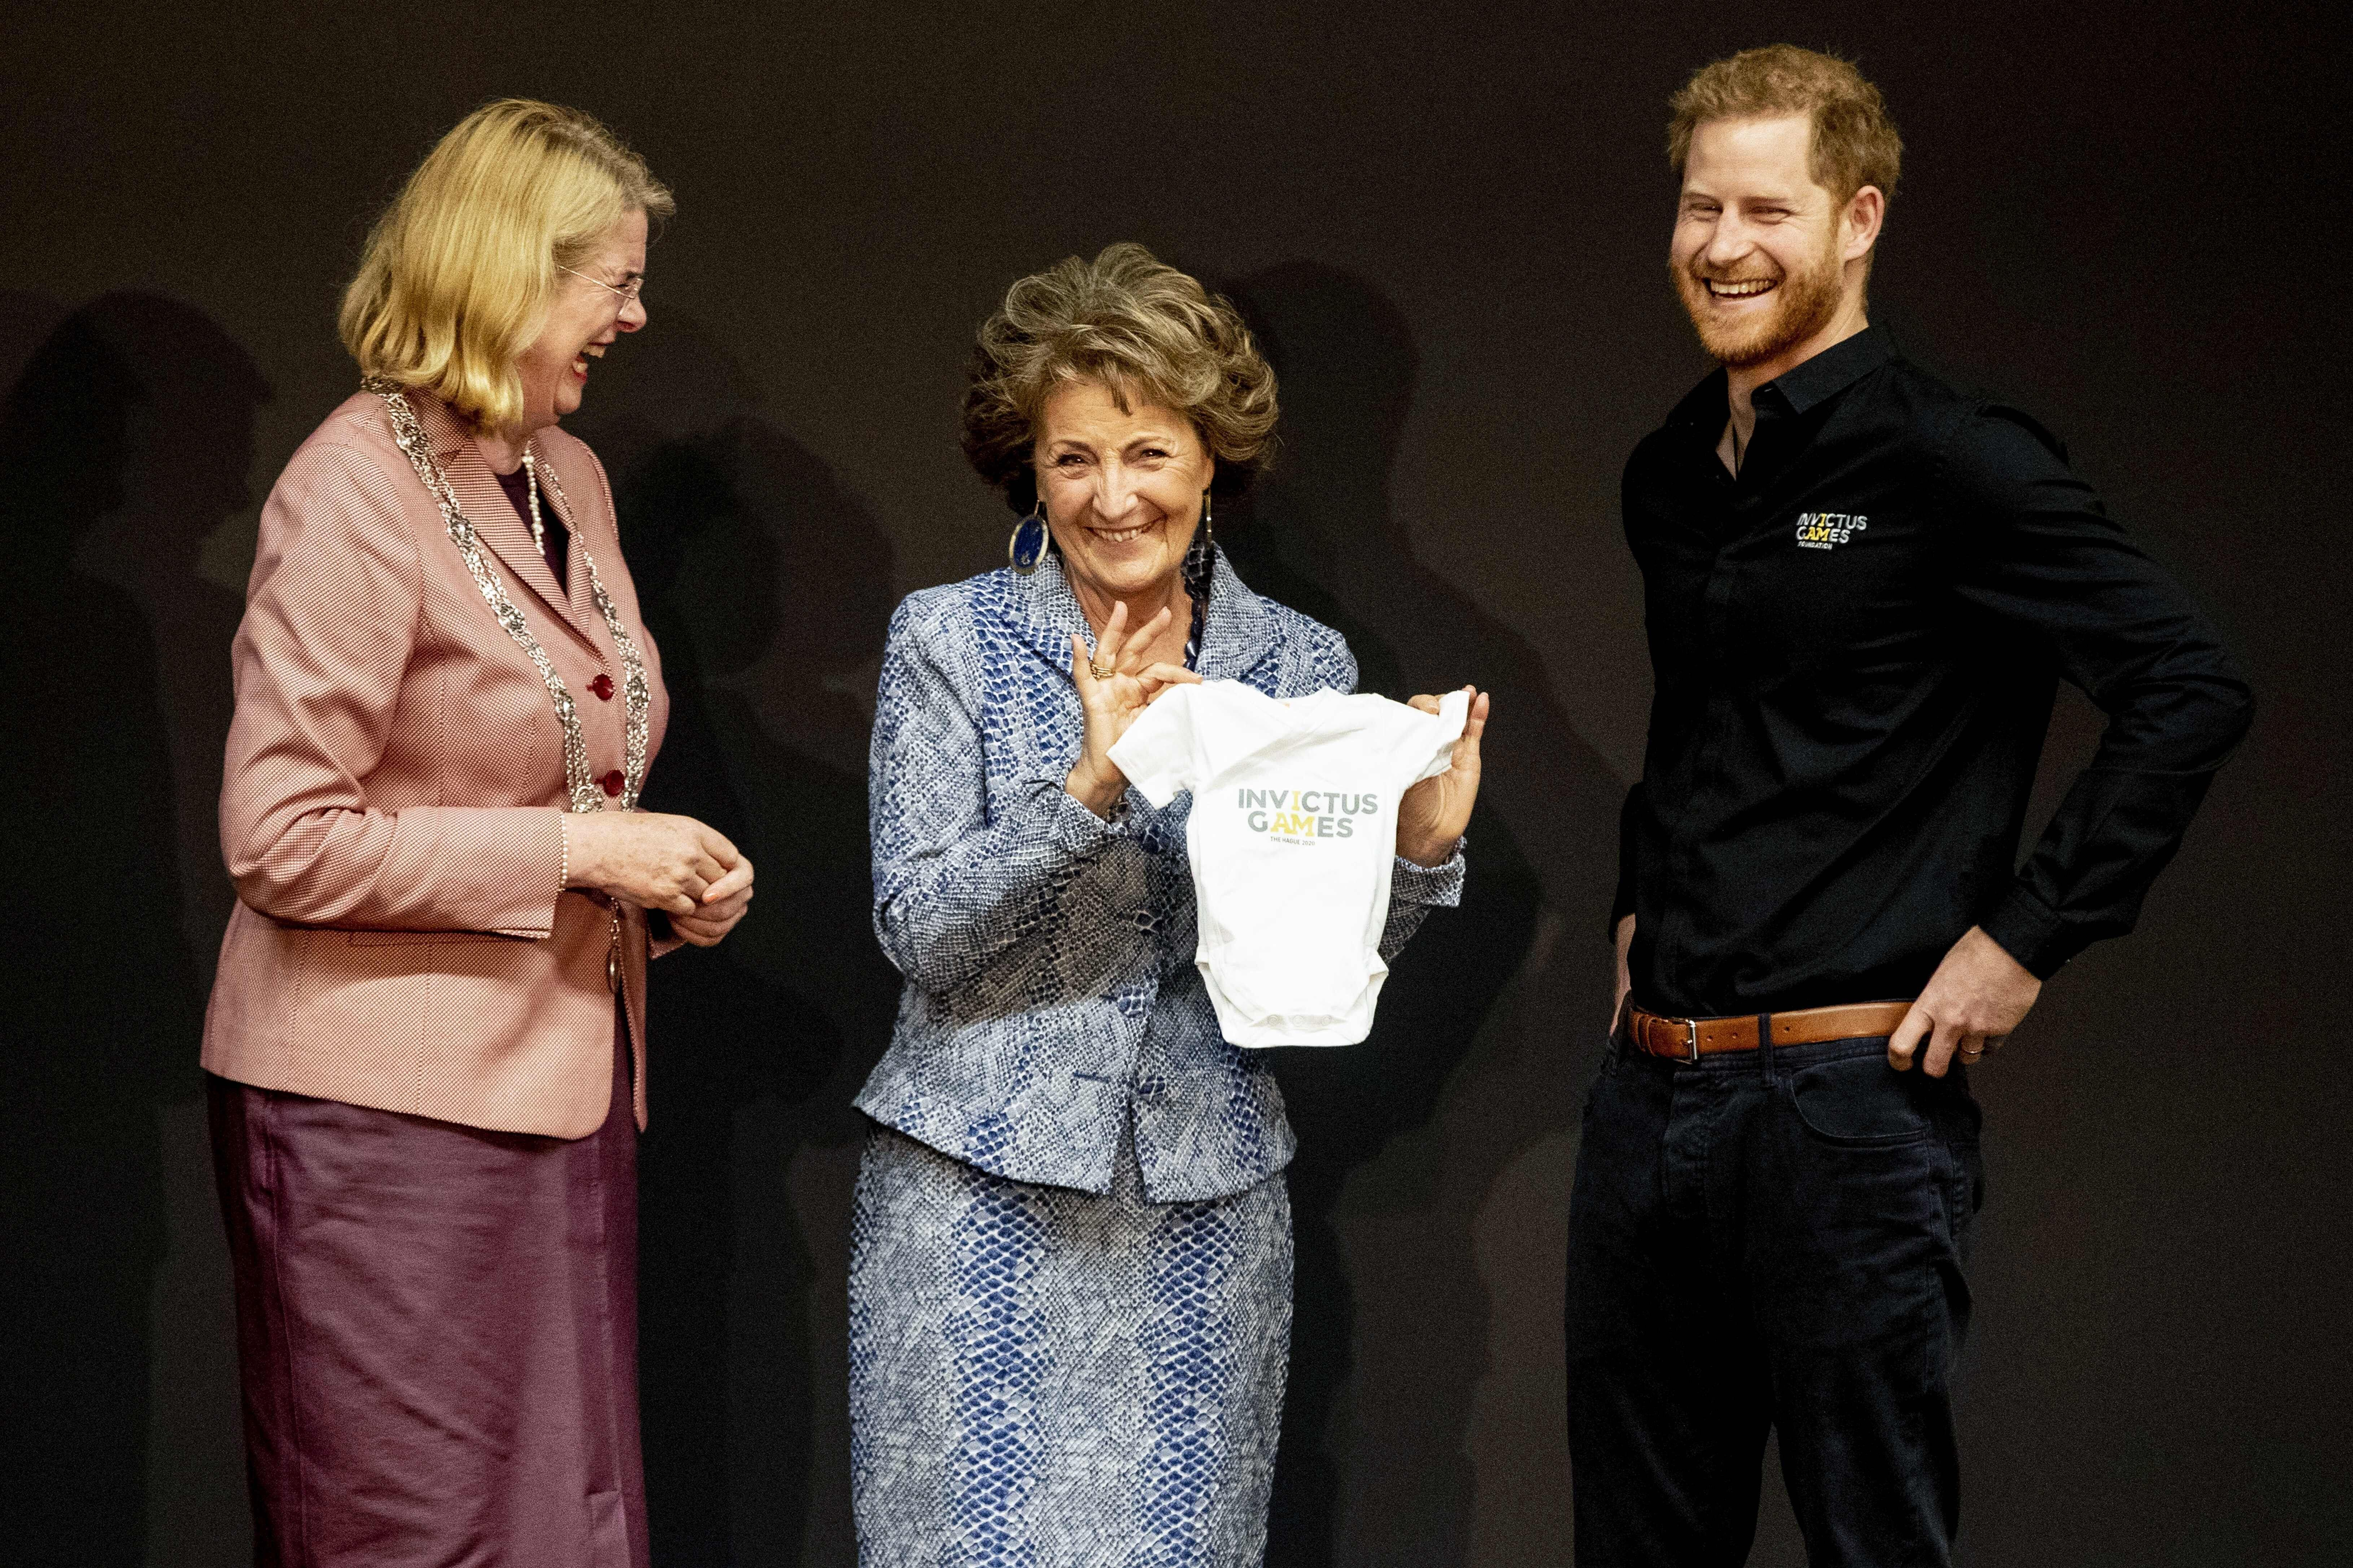 Netherlands' Princess Margriet (center) holds a piece of baby clothing next to Britain's Prince Harry (right) during the pres